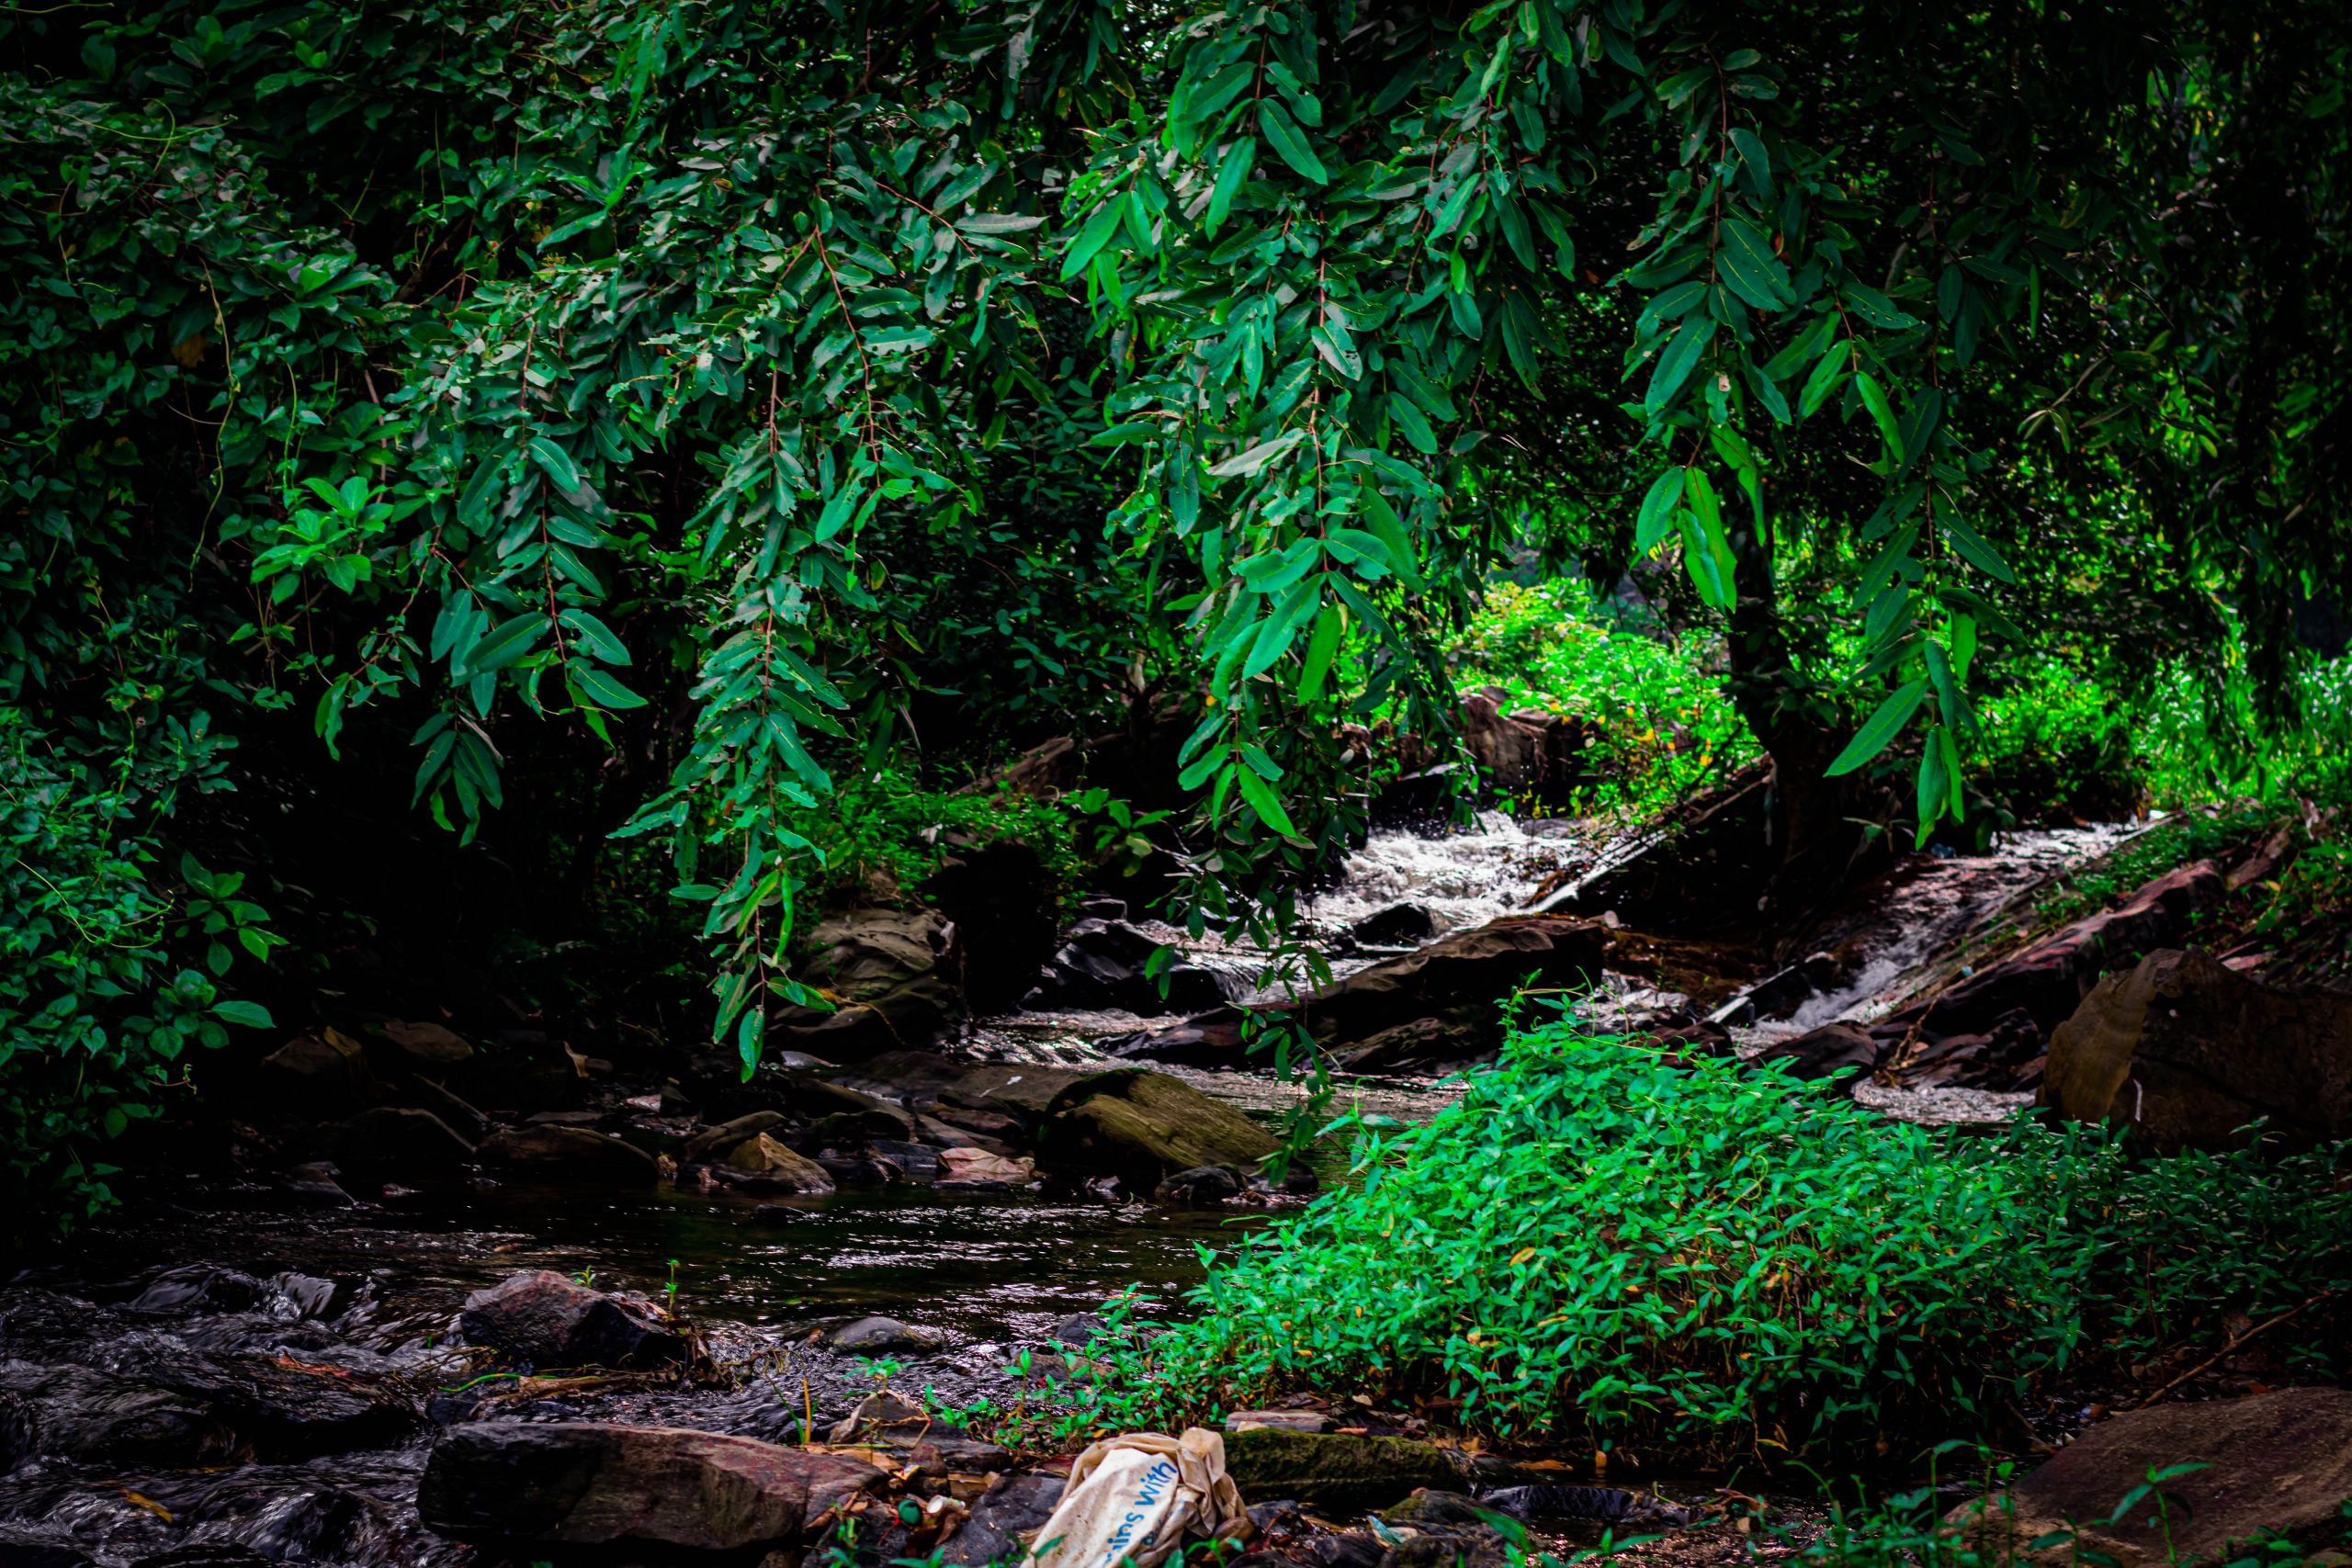 A Stream in a Forest